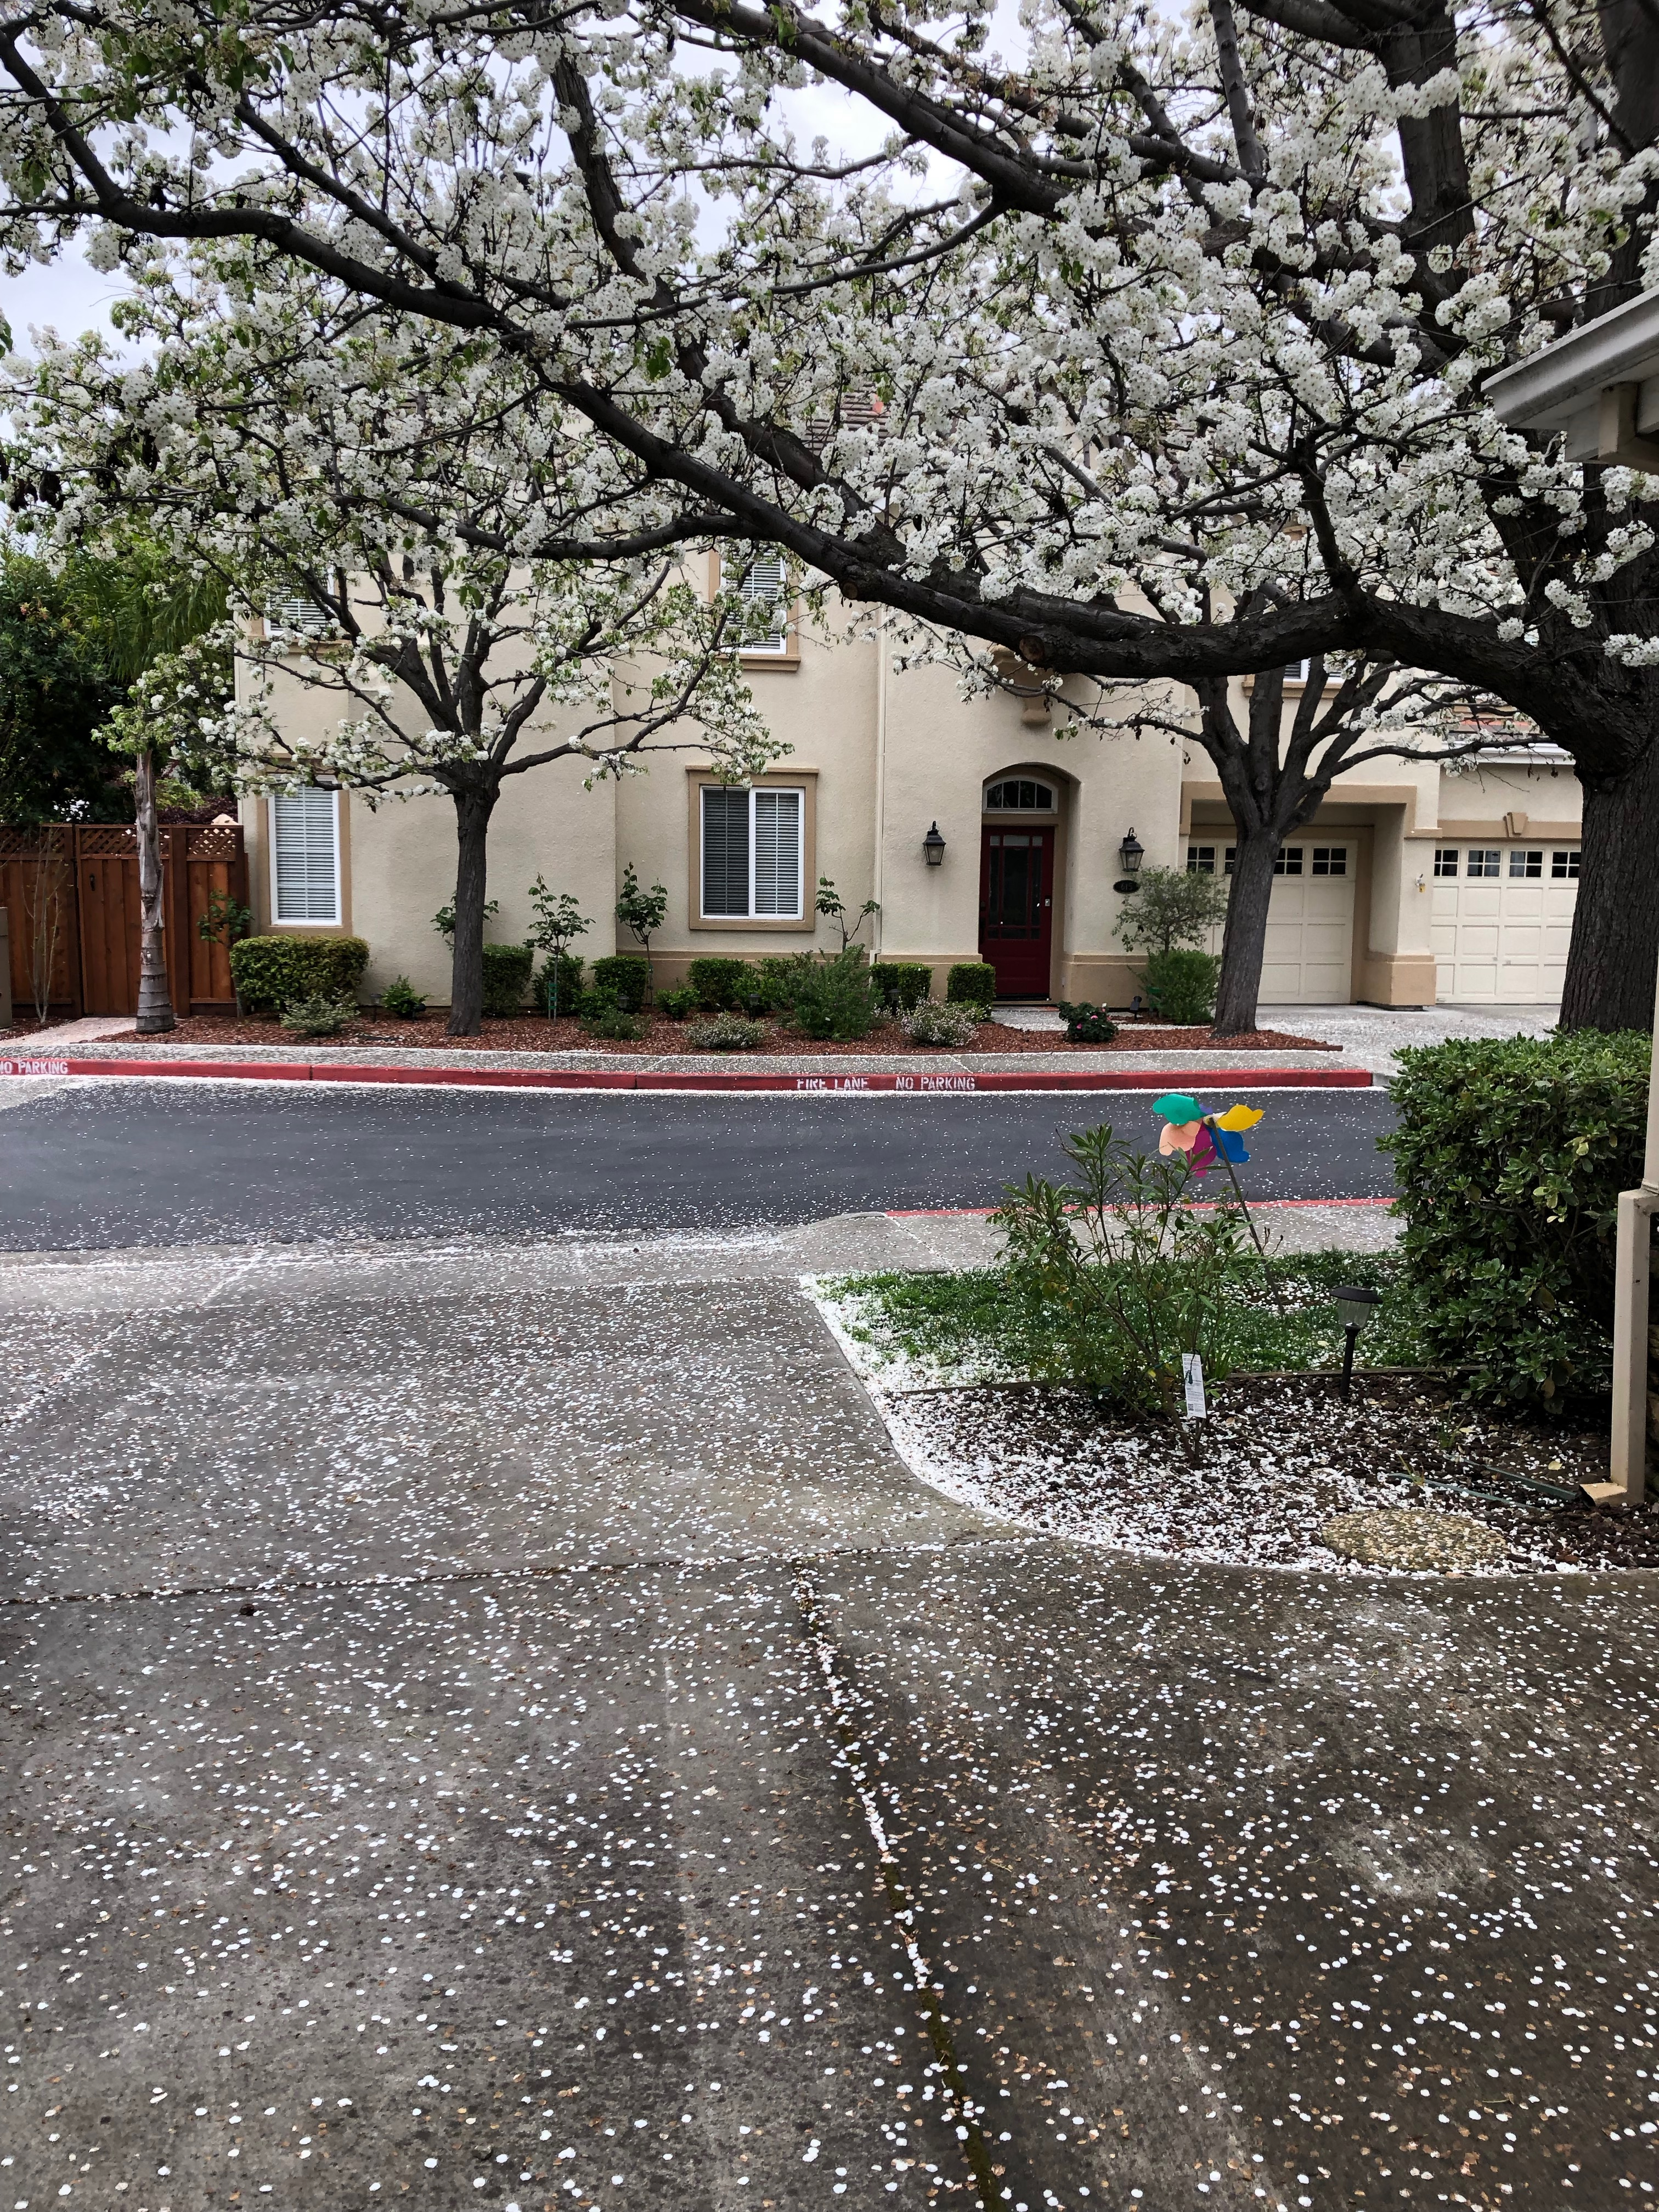 Spring blossom, looking a lot like snow!